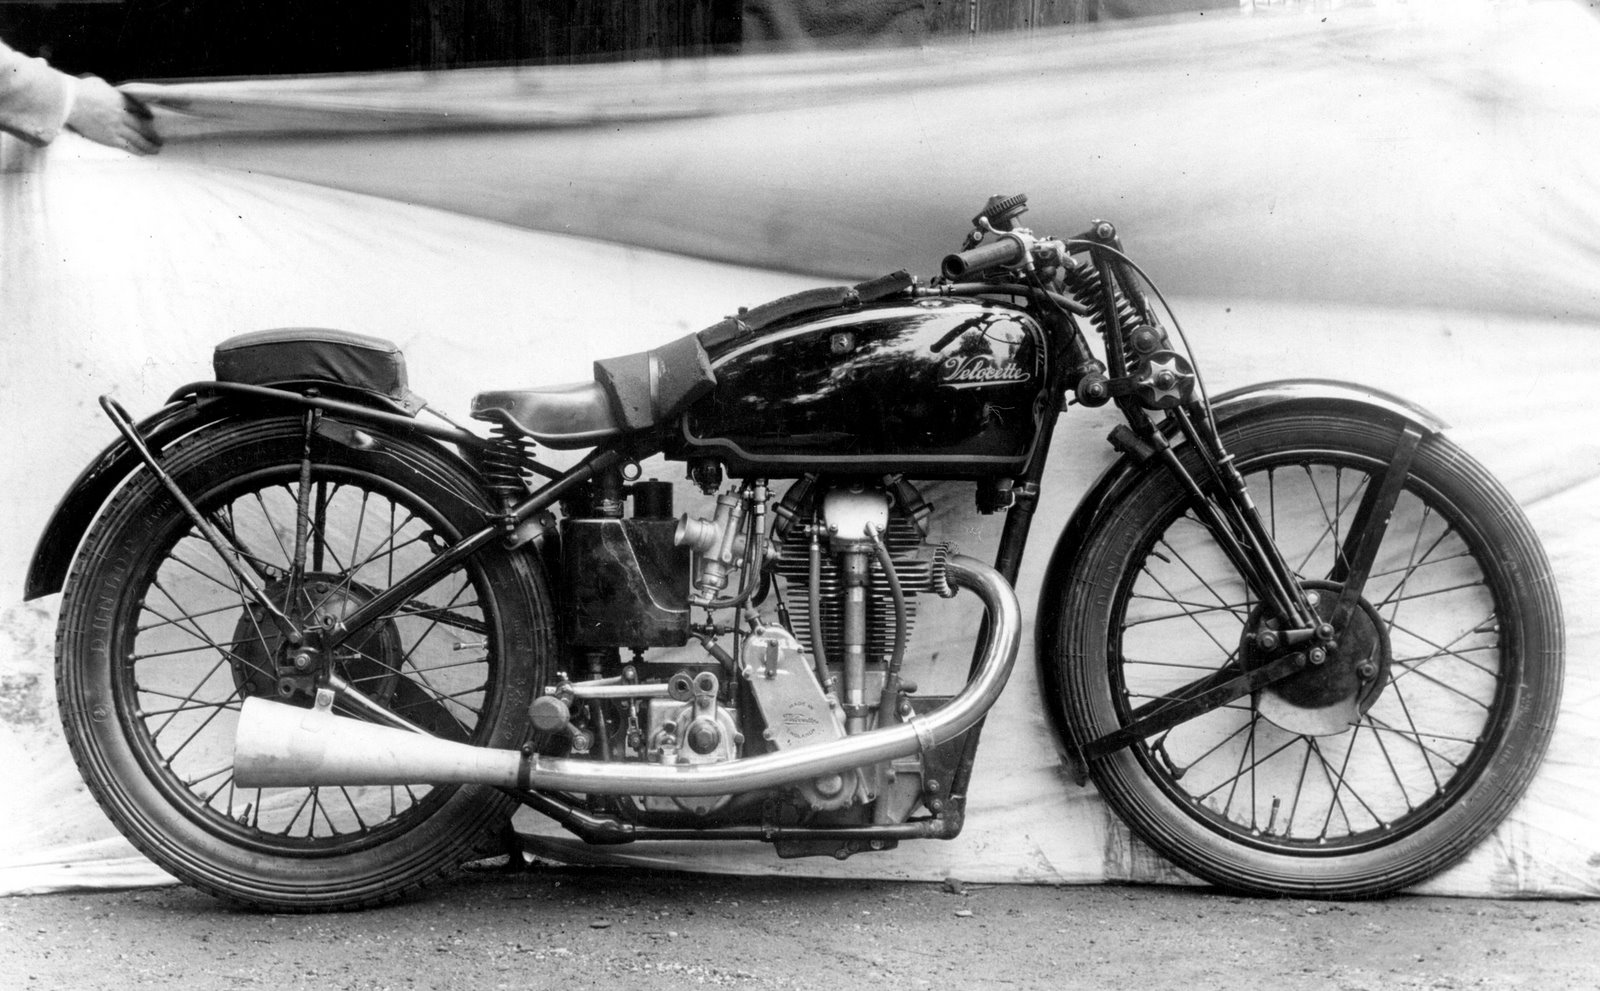 Velocette ktt photo - 1